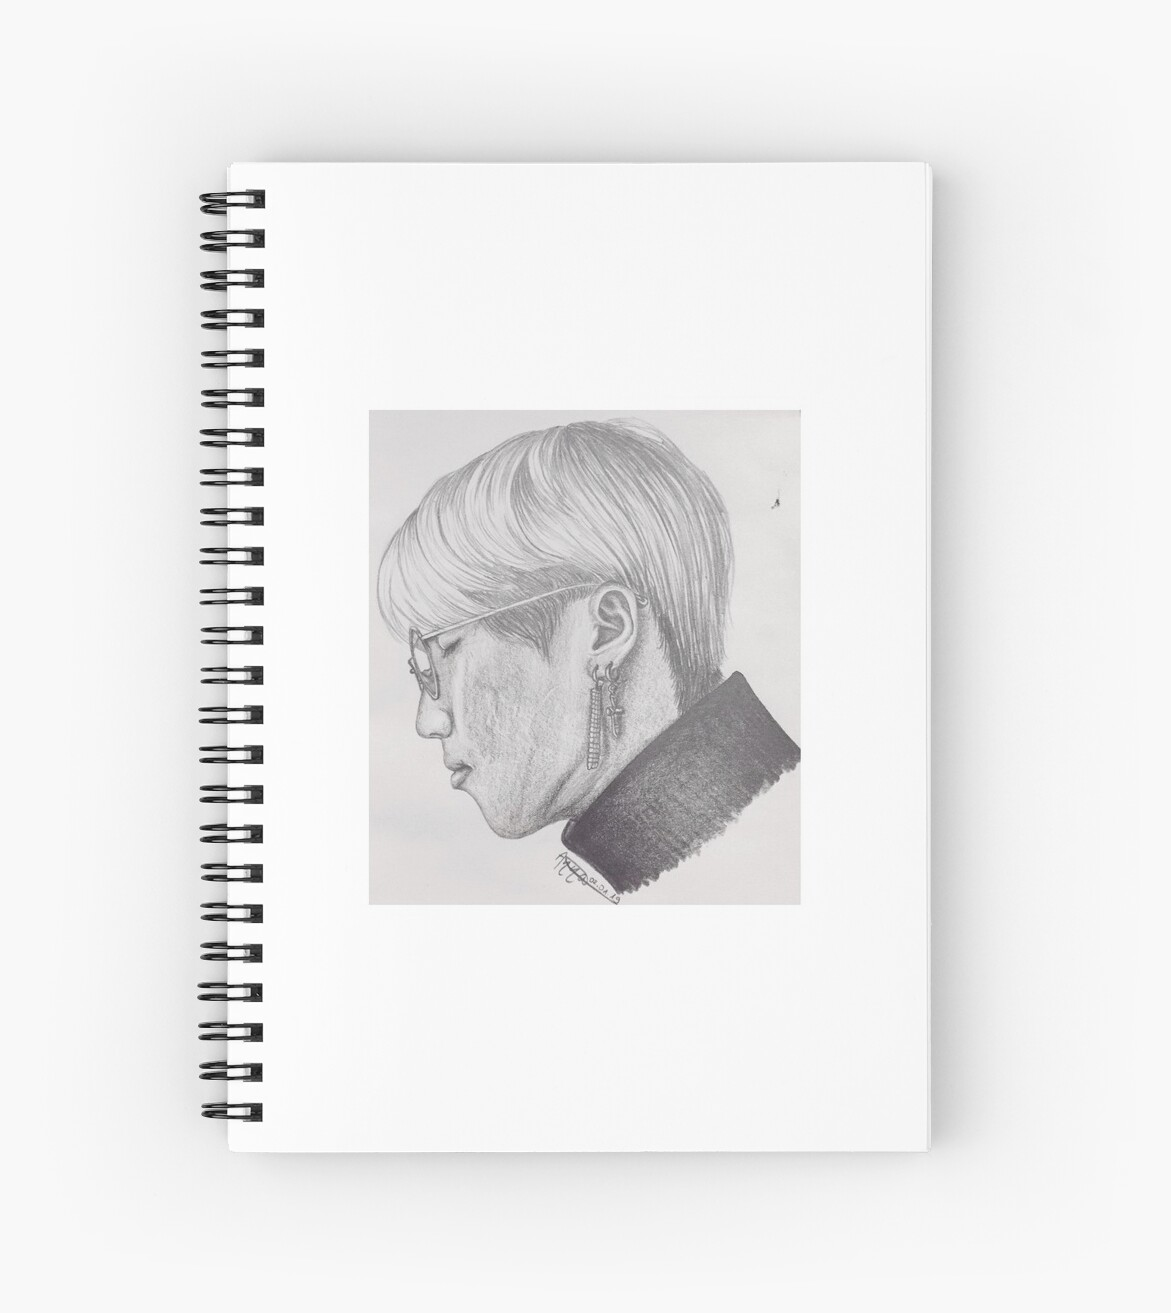 'Stray Kids - Han Jisung side profile fanart' Spiral Notebook by  DerDieDasAnna